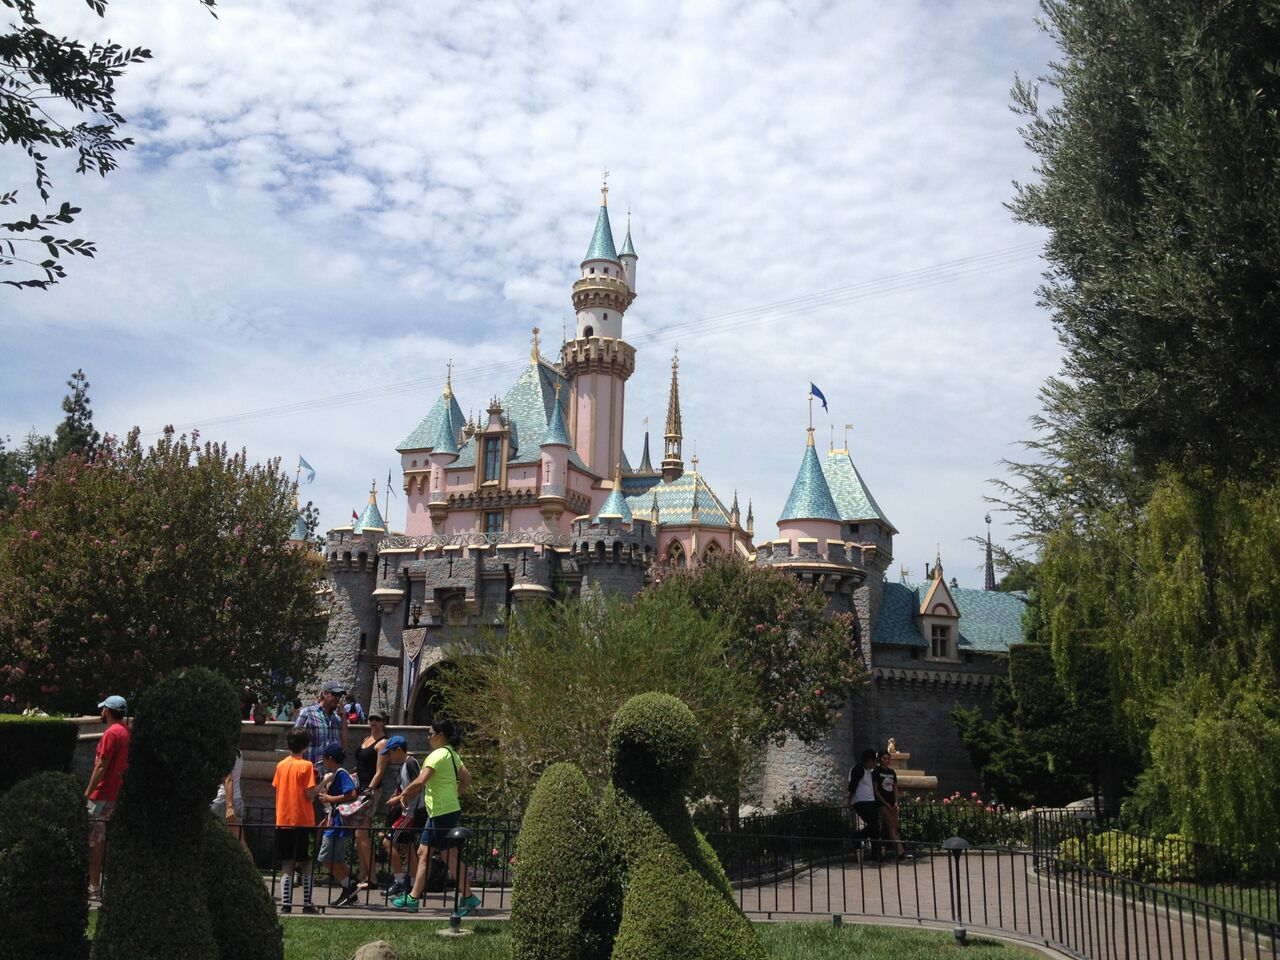 Five Things You Need to Do in Disneyland Now Before You Can't